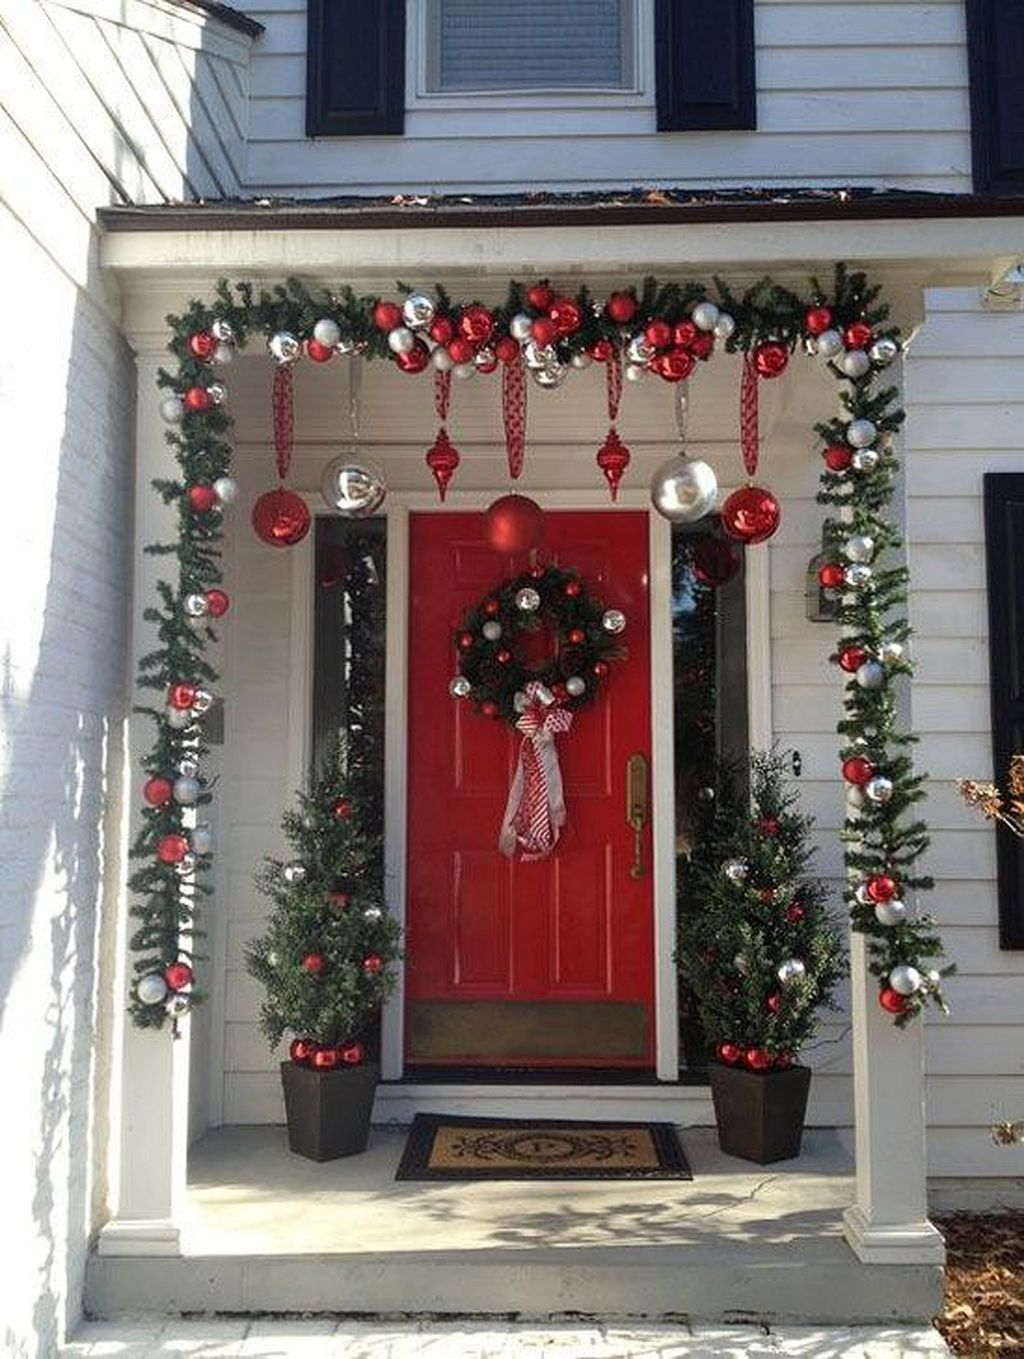 20 Creative Diy Decorating Ideas For Christmas Front Porch In 2020 Beautiful Christmas Decorations Christmas Porch Decor Christmas Entry